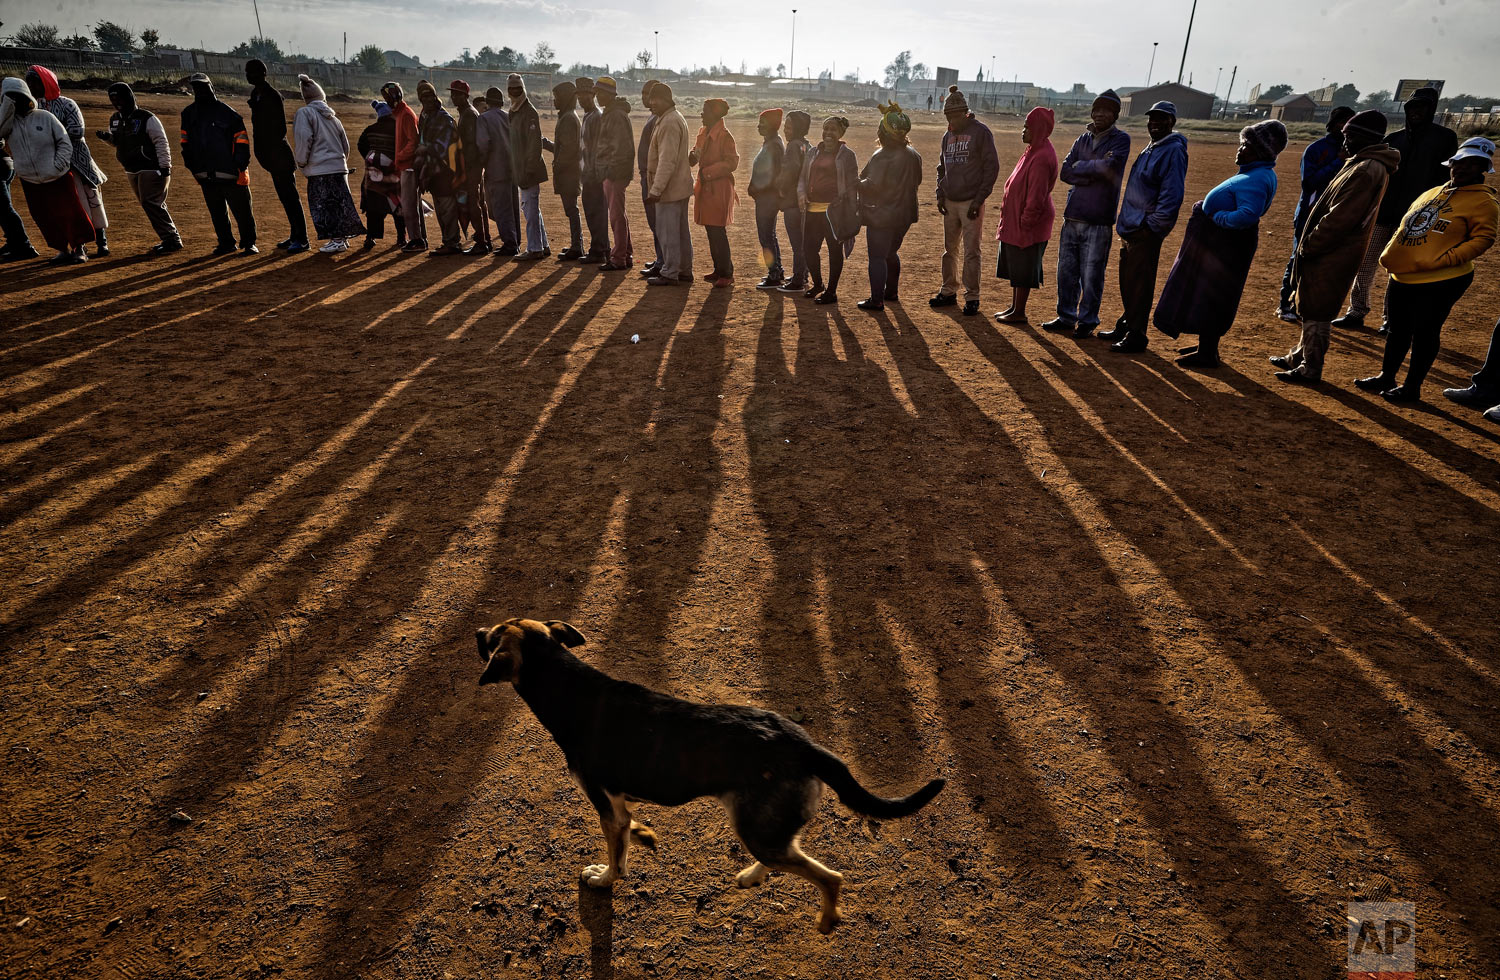 South Africans queue in the early morning sun to cast their votes in the mining settlement of Bekkersdal, west of Johannesburg, in South Africa, May 8, 2019. (AP Photo/Ben Curtis)